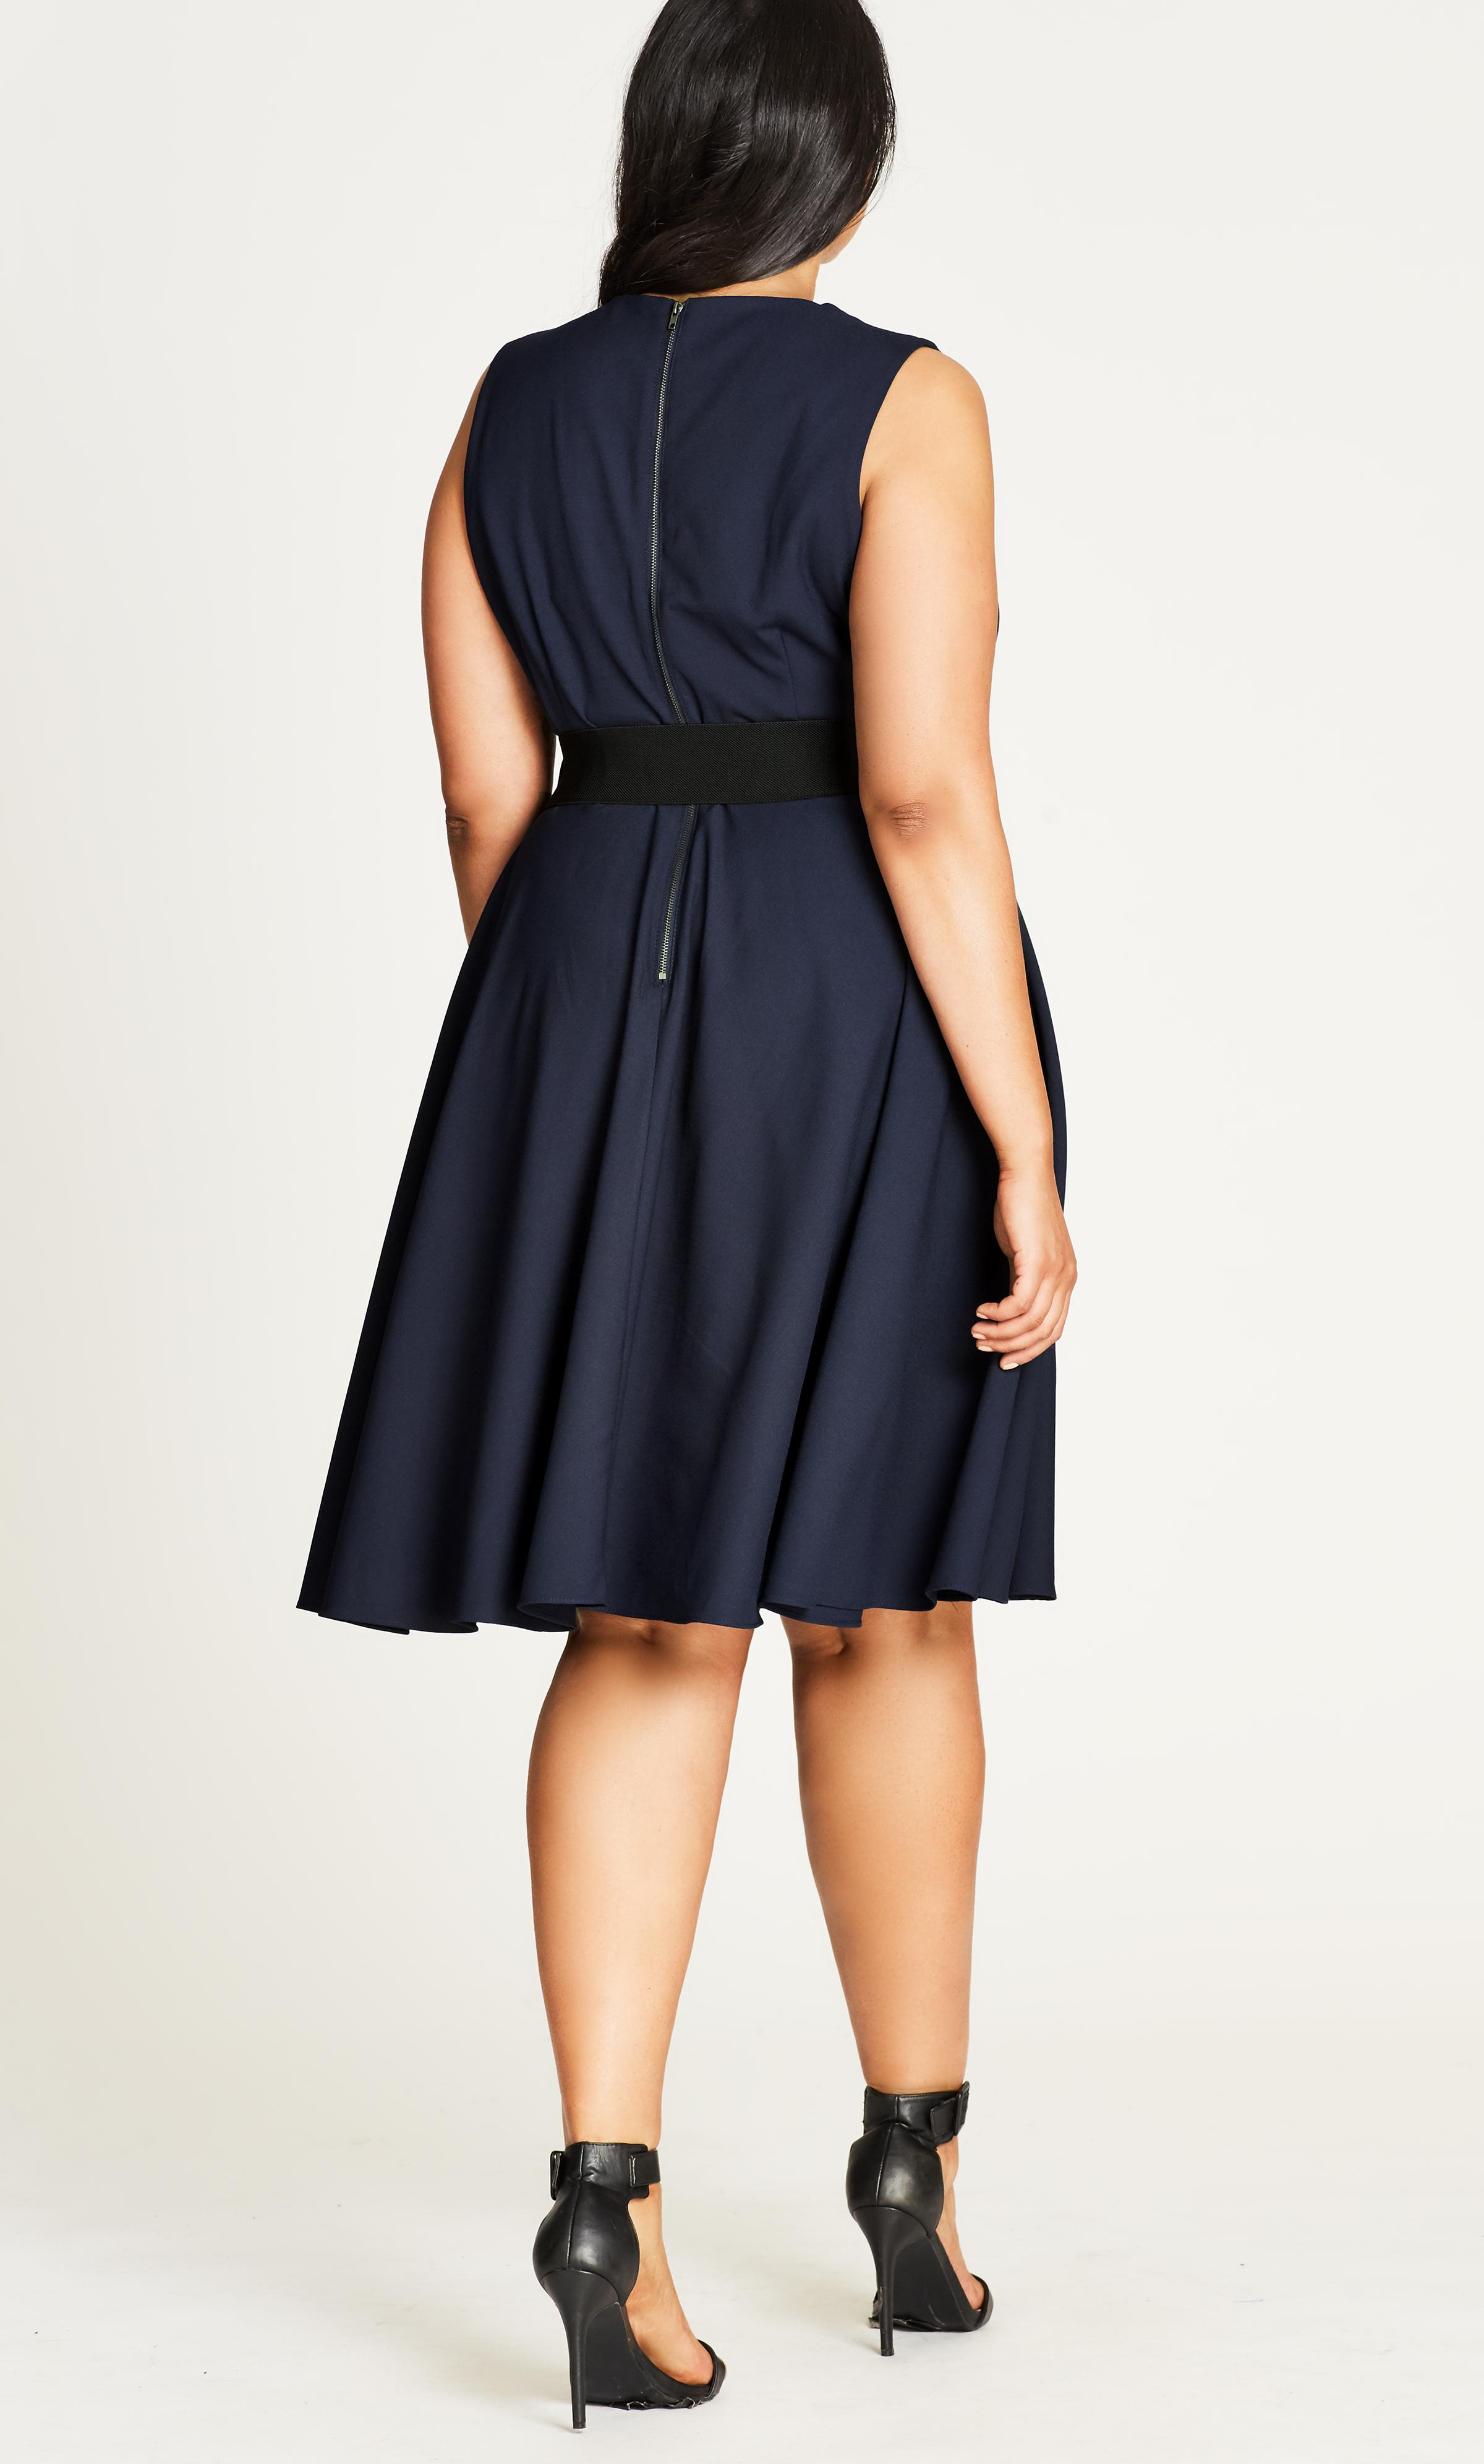 70dc9adab744 City Chic - Blue Navy Vintage Veronica Fit   Flare Dress - Lyst. View  fullscreen